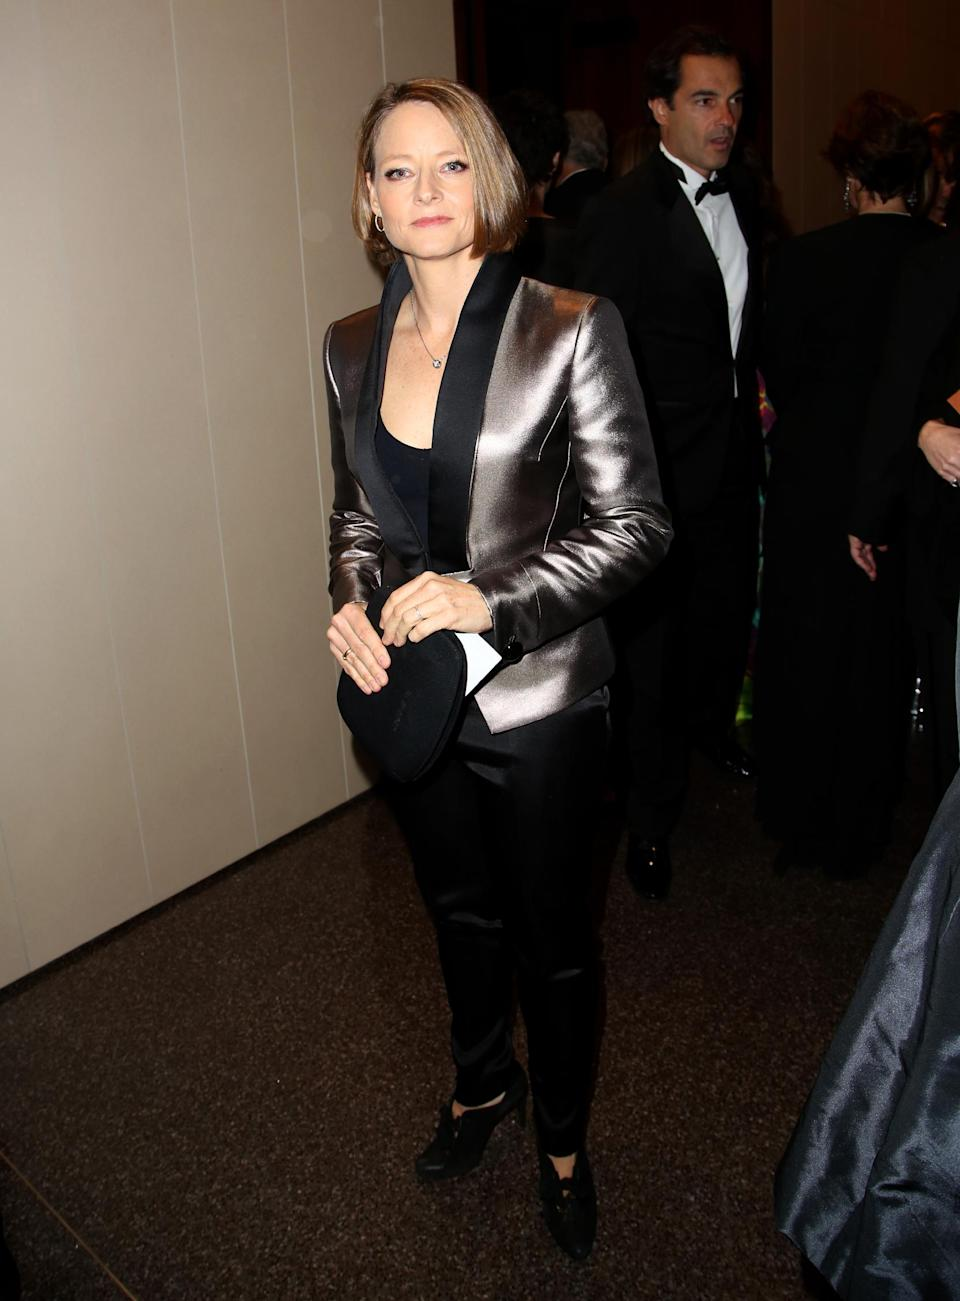 Actress Jodie Foster attends the Wallis Annenberg Center for the Performing Arts Inaugural Gala on Thursday, Oct. 17, 2013, in Beverly Hills, Calif. (Photo by Brian Dowling/Invision/AP)